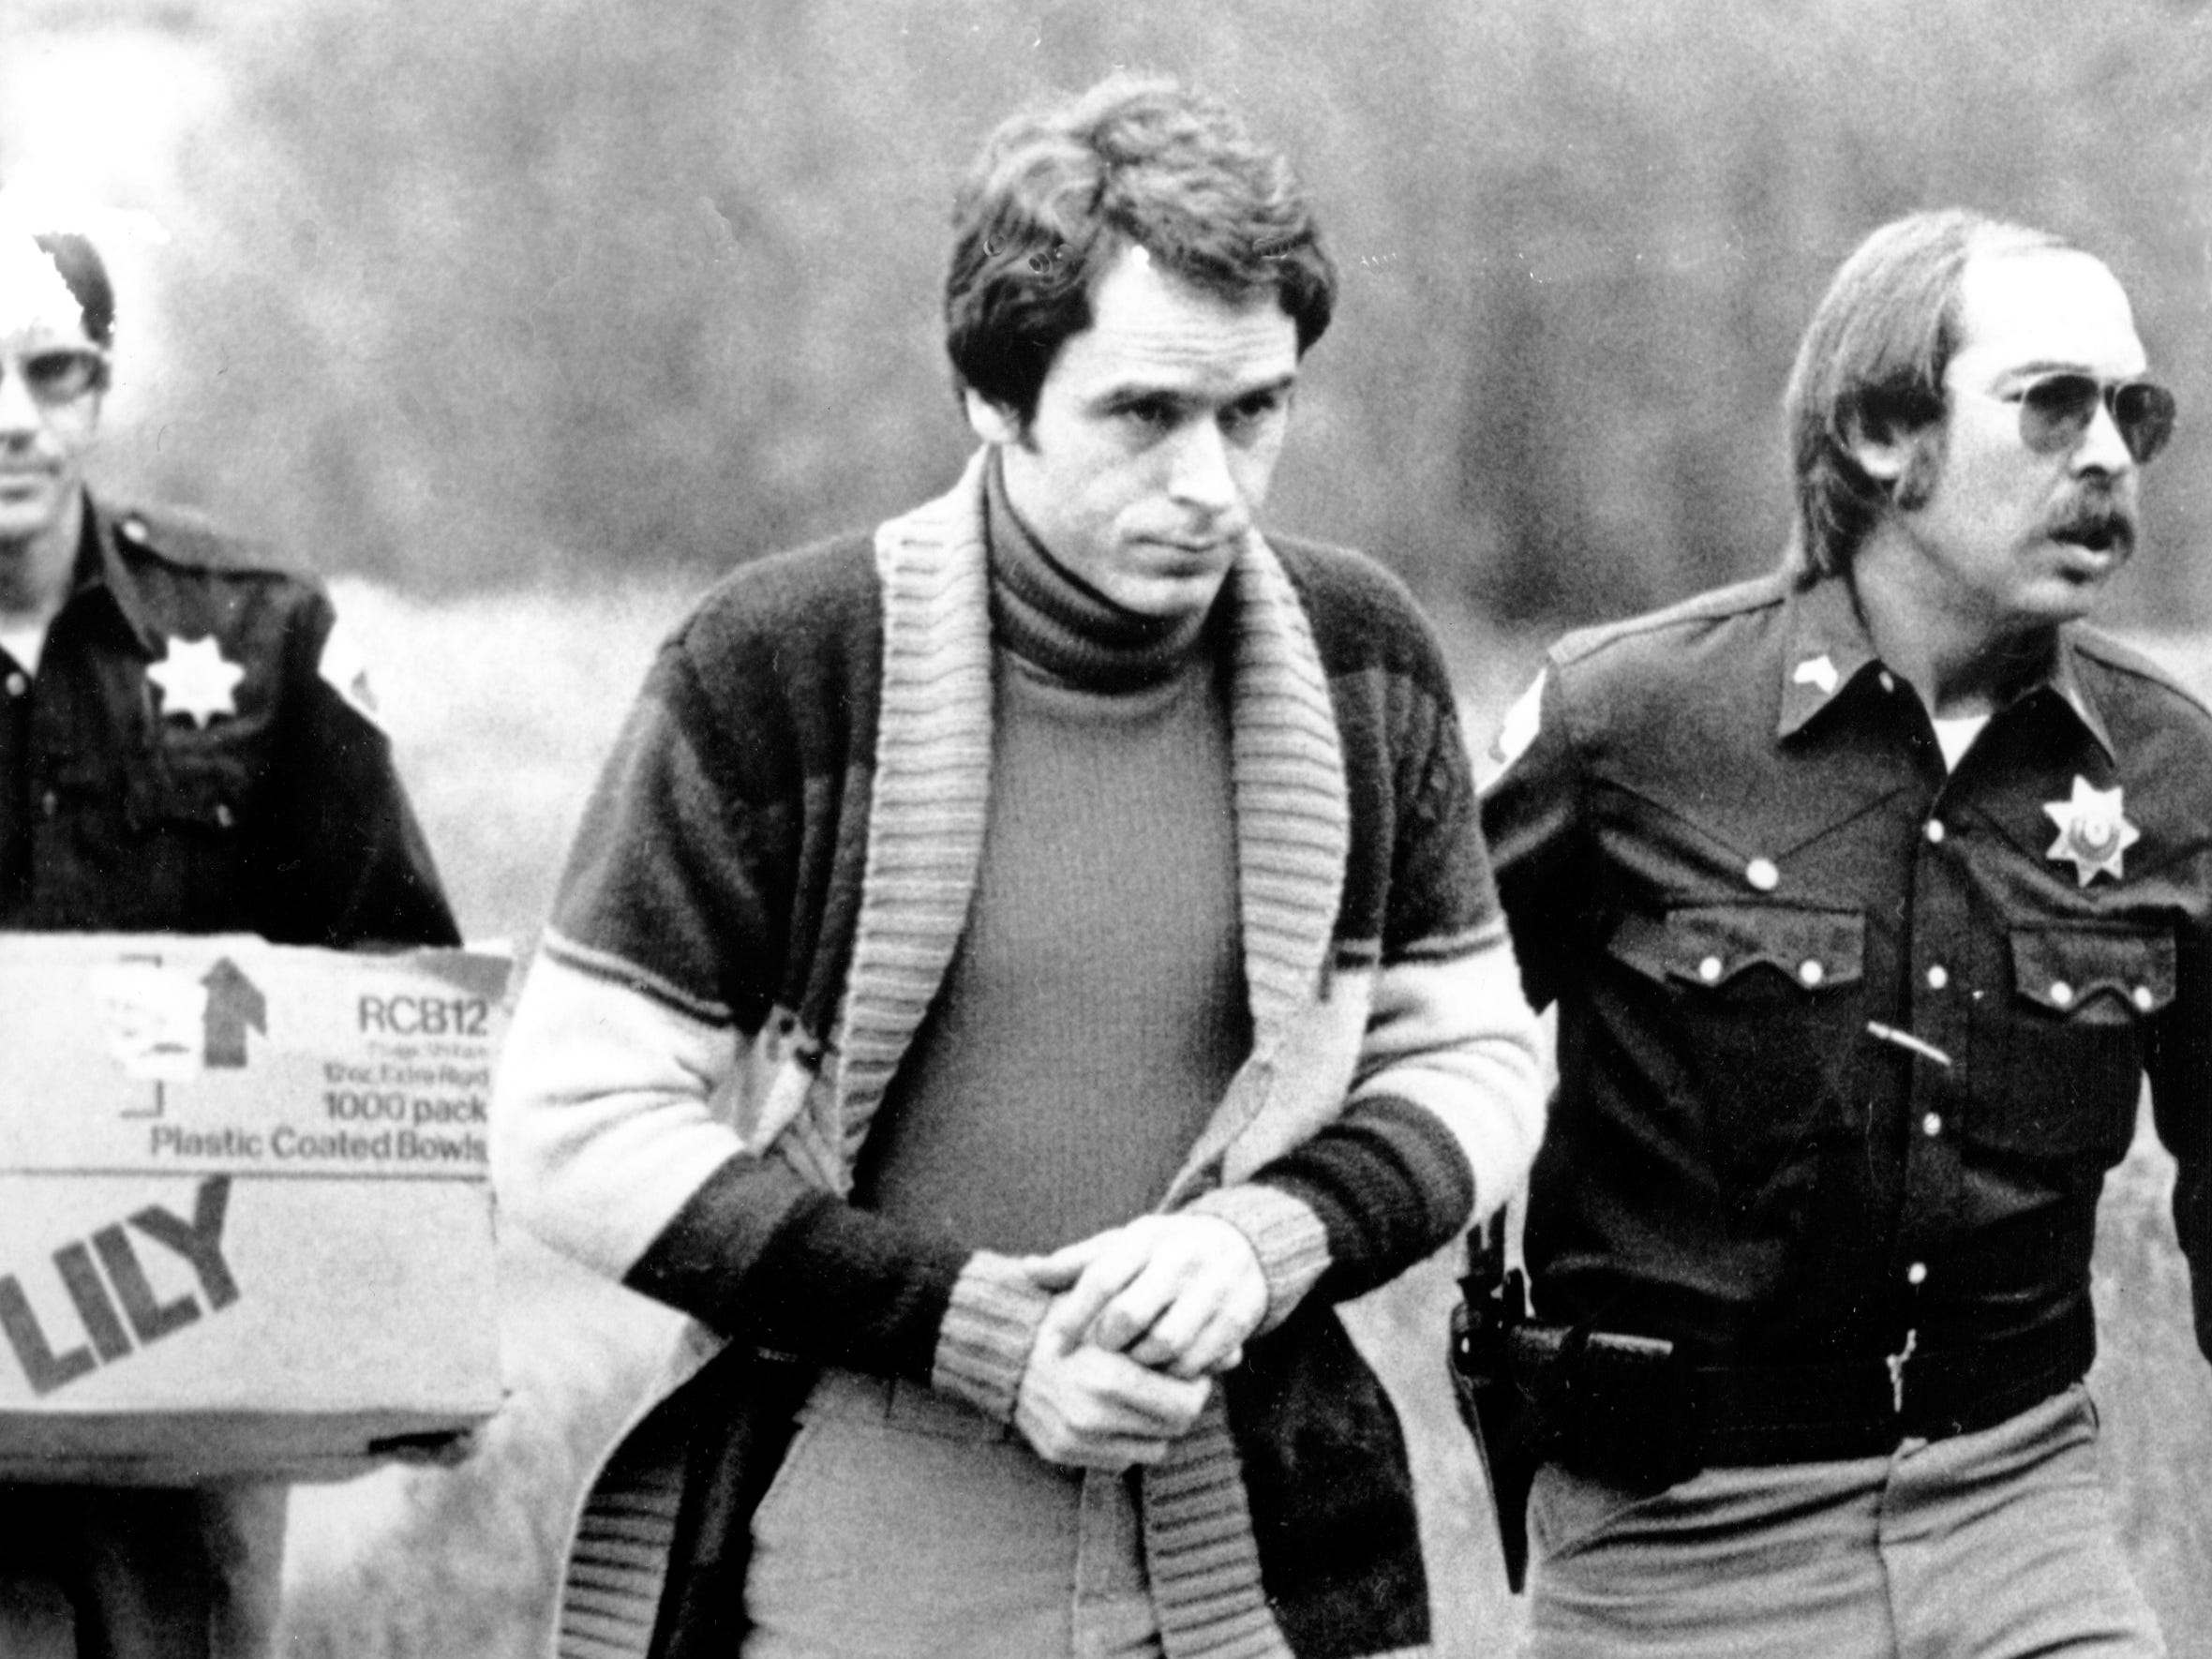 Convicted kidnapper Theodore Bundy is led into the Pitkin County courthouse by Deputy Peter Murphy, left, and Rick Kralicek for a hearing in Aspen, Colo., on June 8, 1977.  Bundy, who was being charged for murder, jumped out of a second-story window during a court recess.